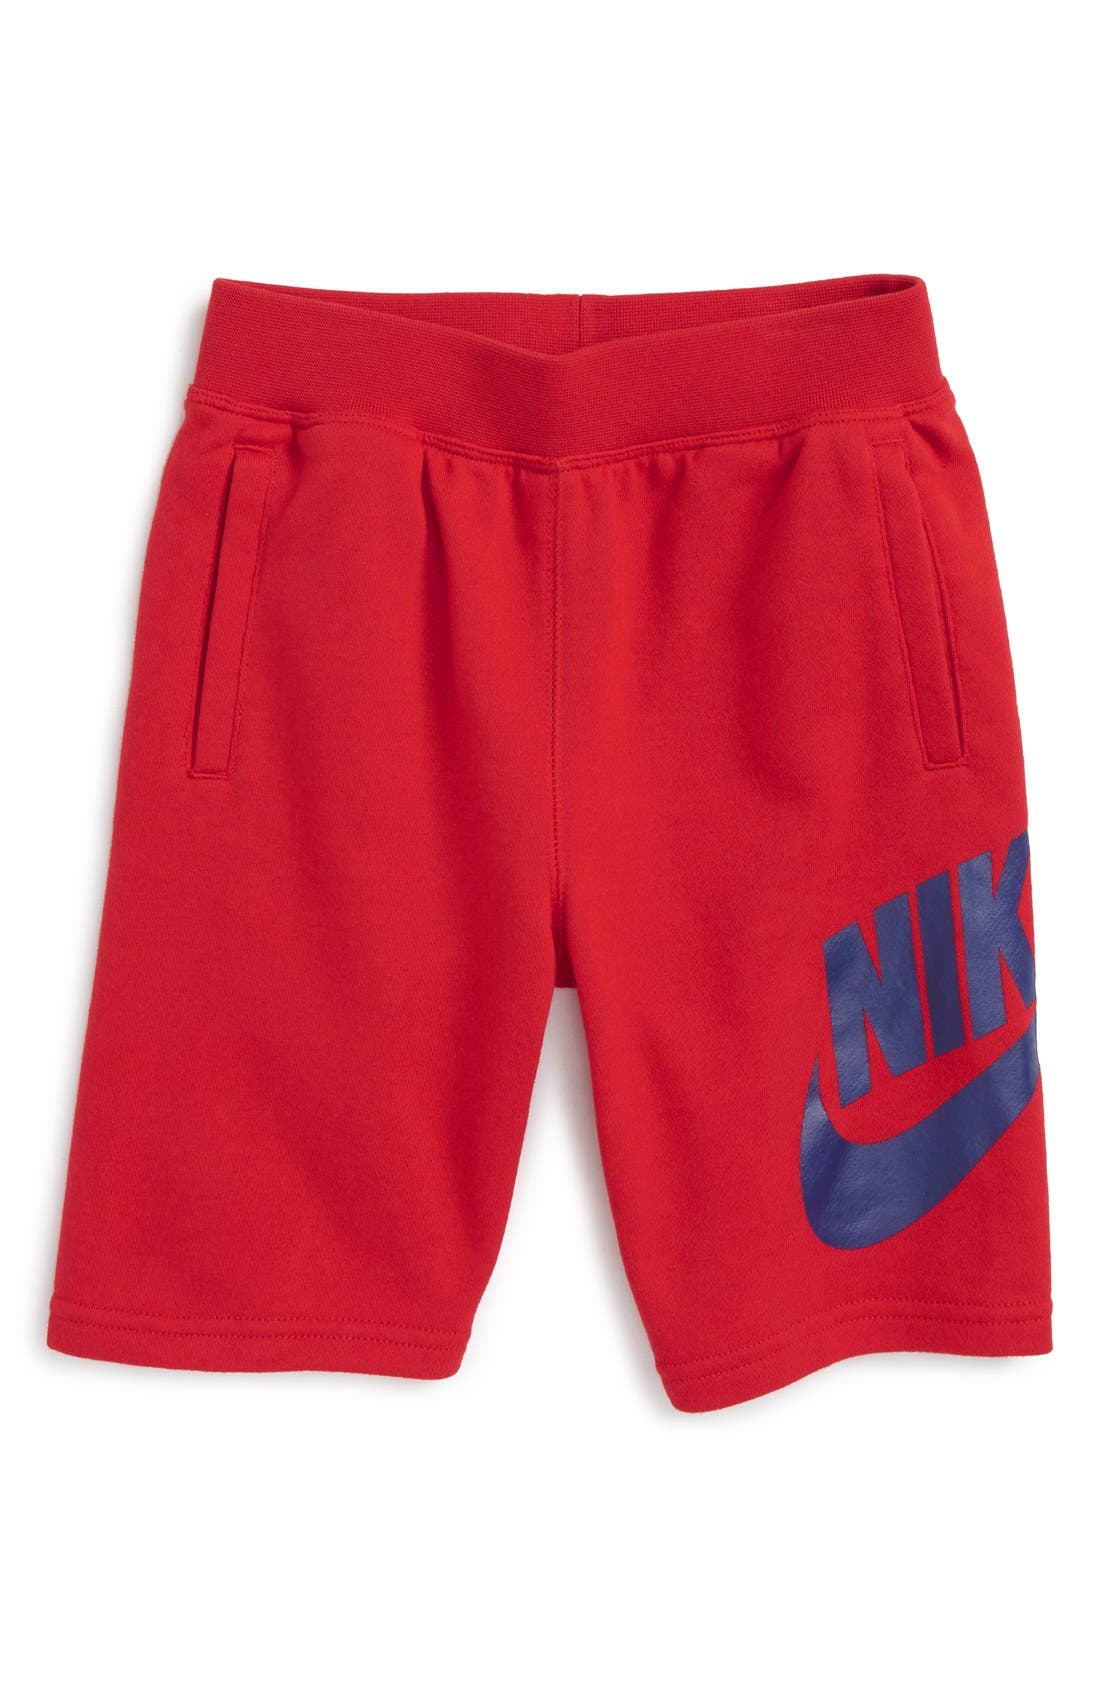 Alumni French Terry Knit Shorts,                         Main,                         color, University Red